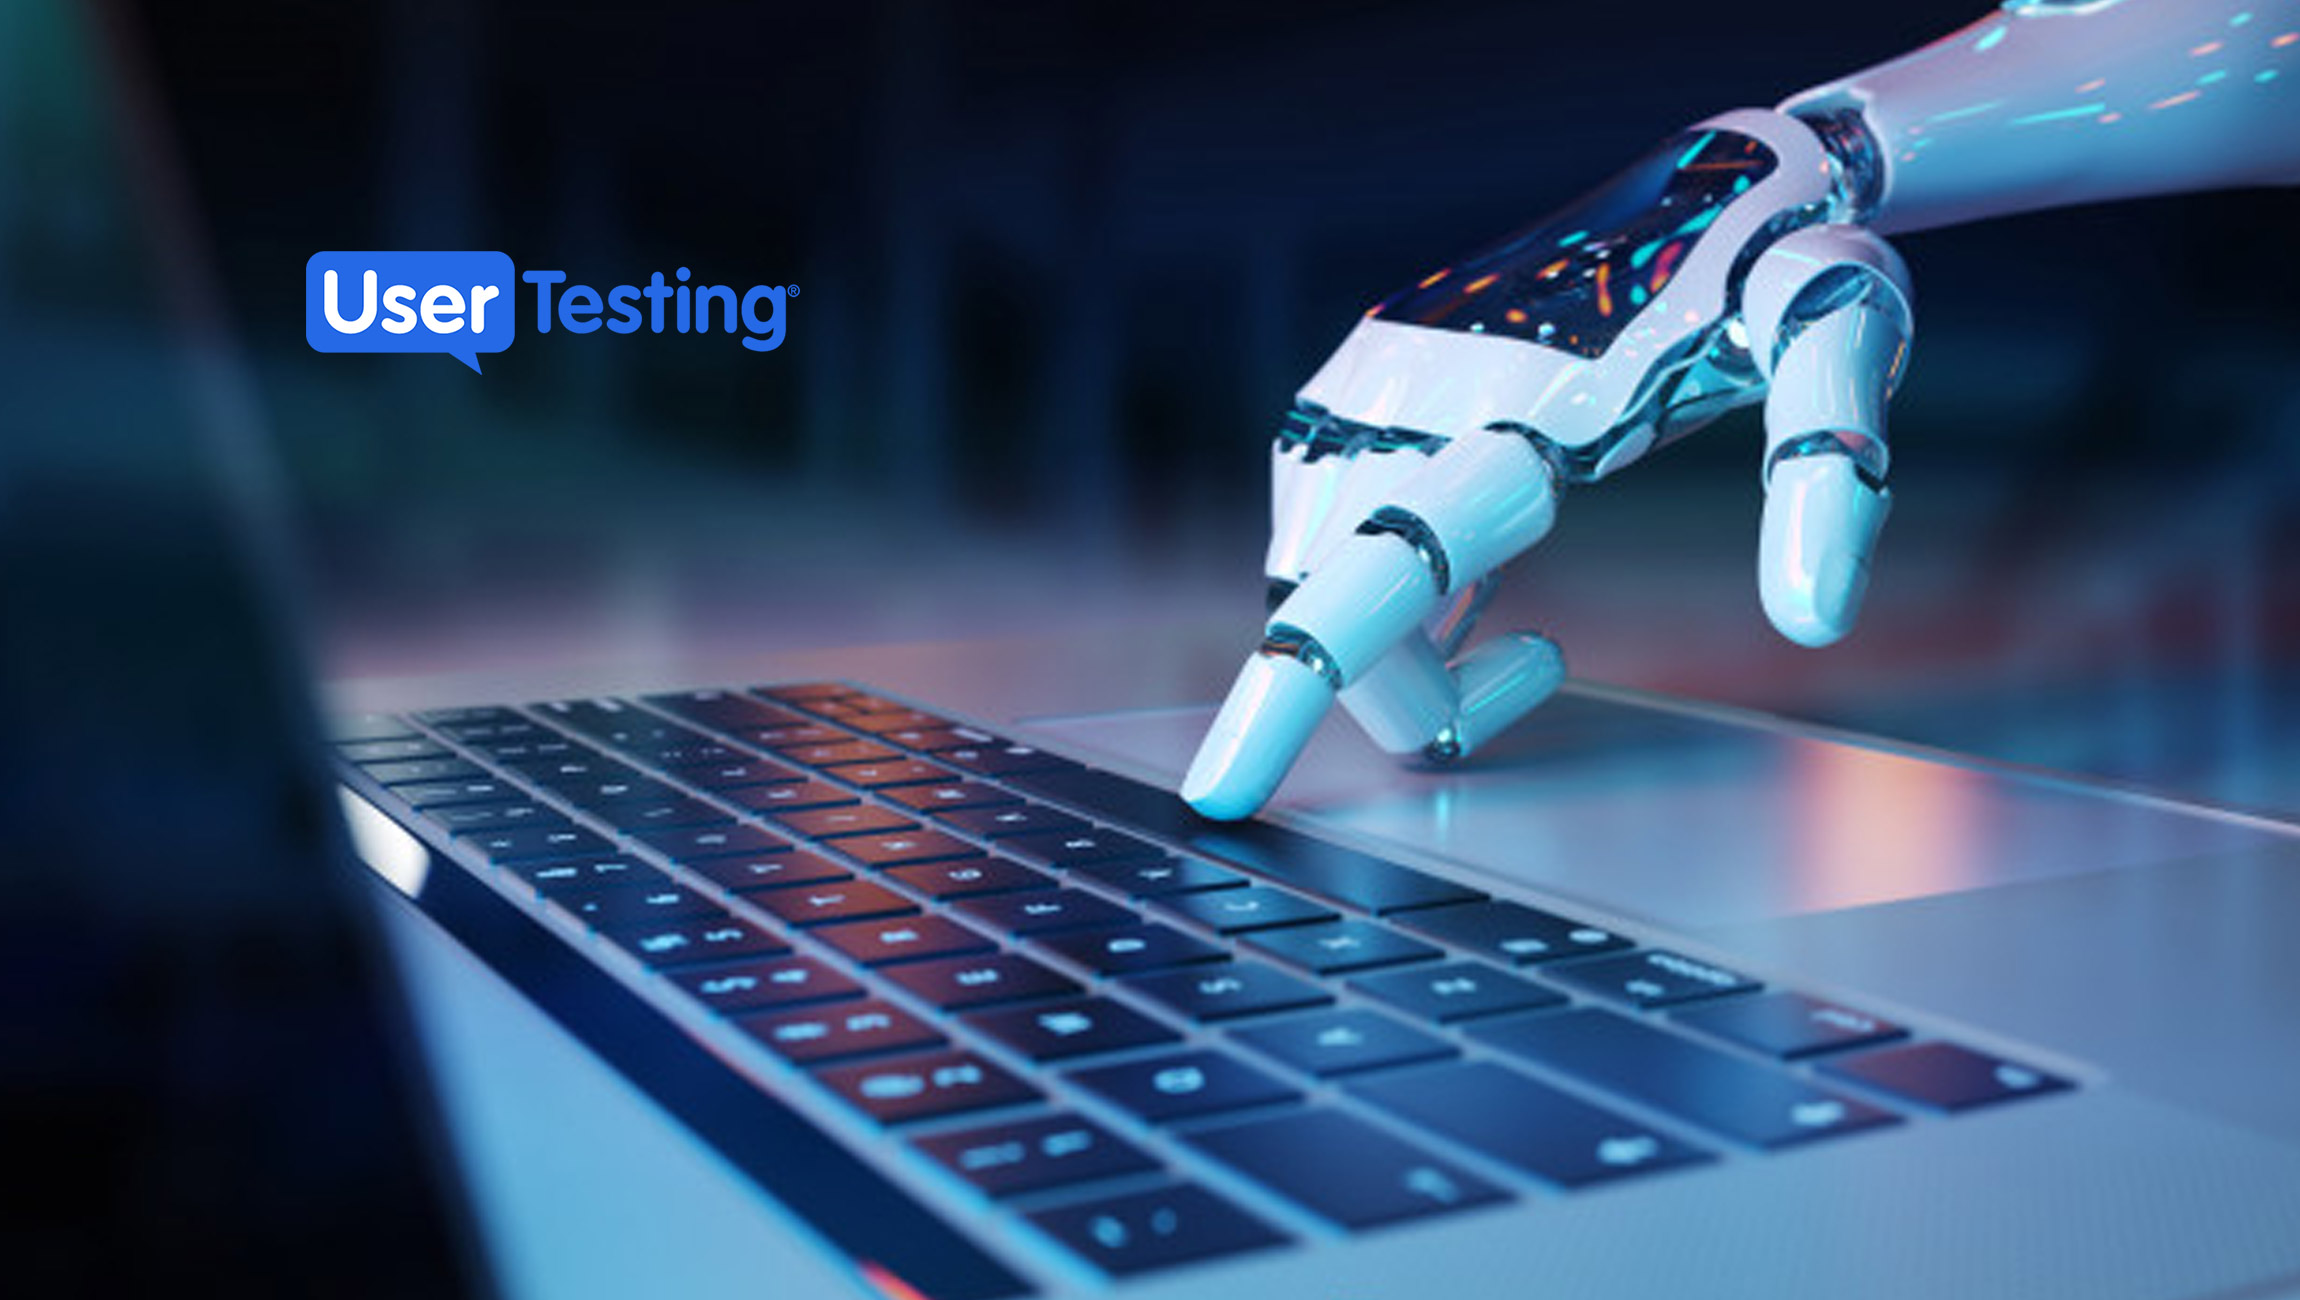 Usertesting Delivers the Fastest Time to Insights with Intelligent Insights